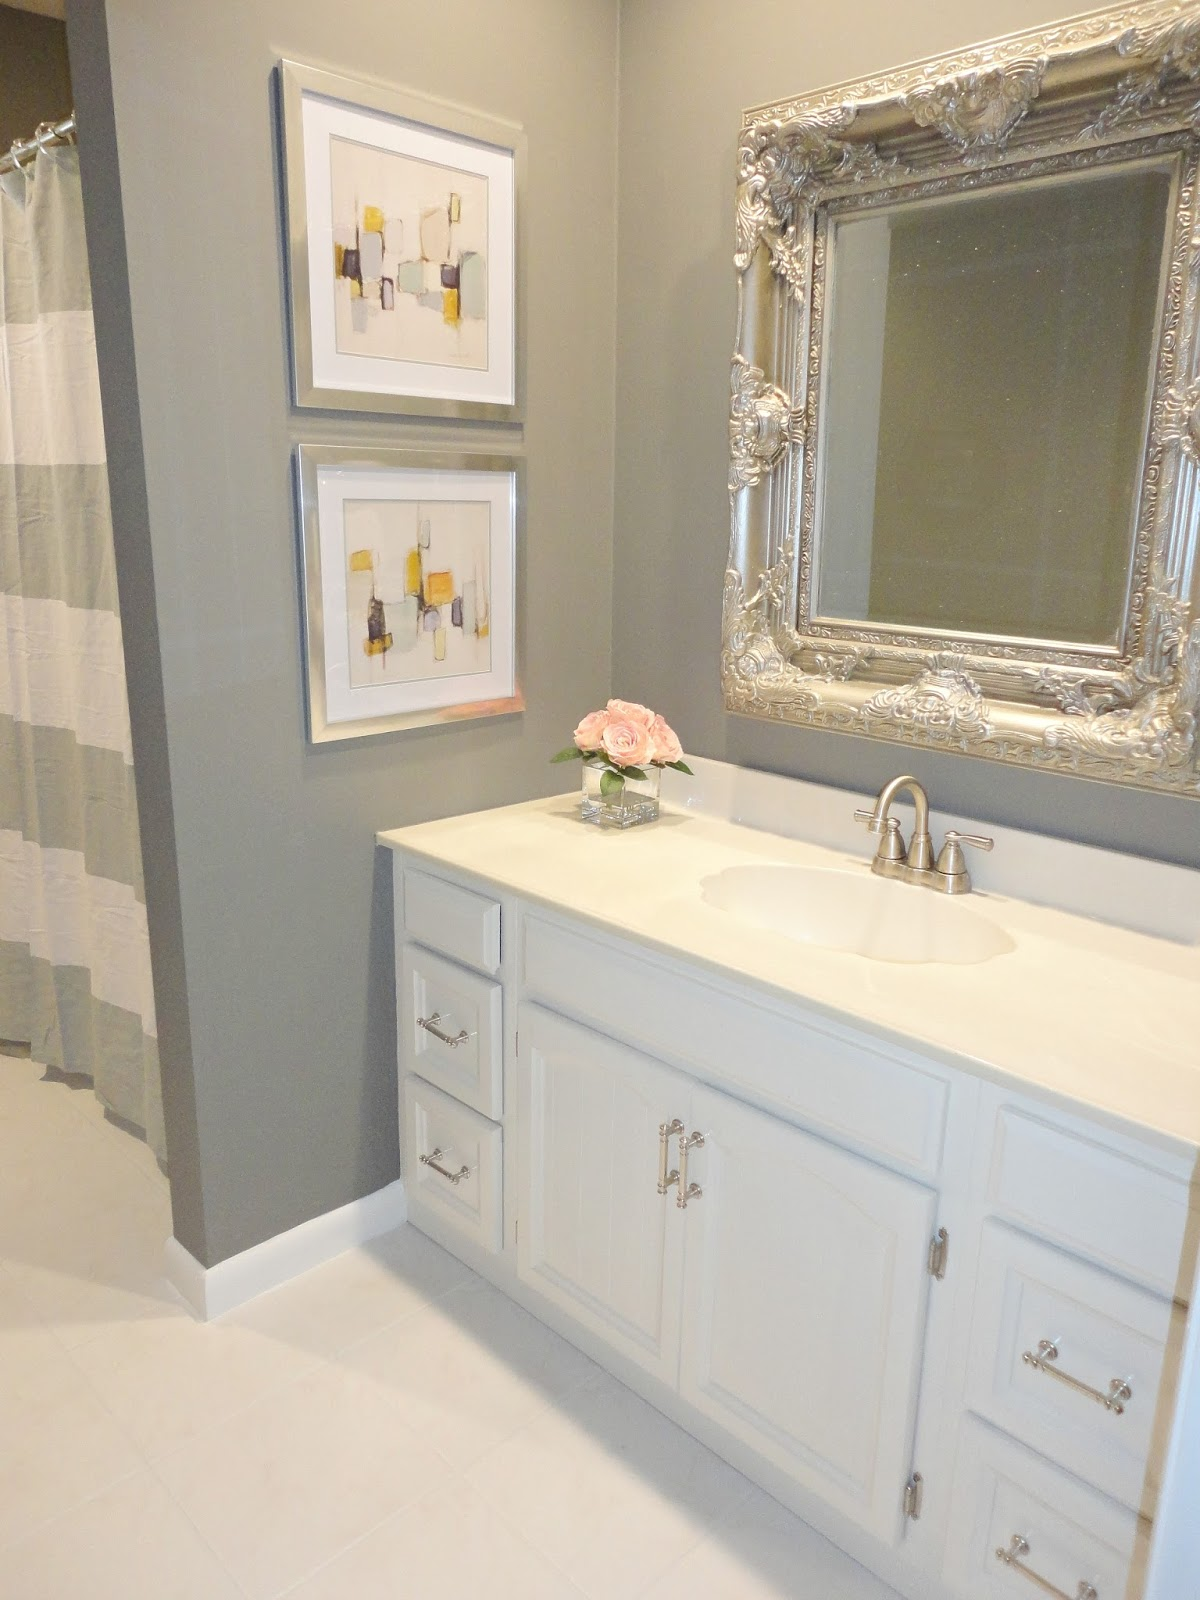 Livelovediy diy bathroom remodel on a budget How to remodel a bathroom